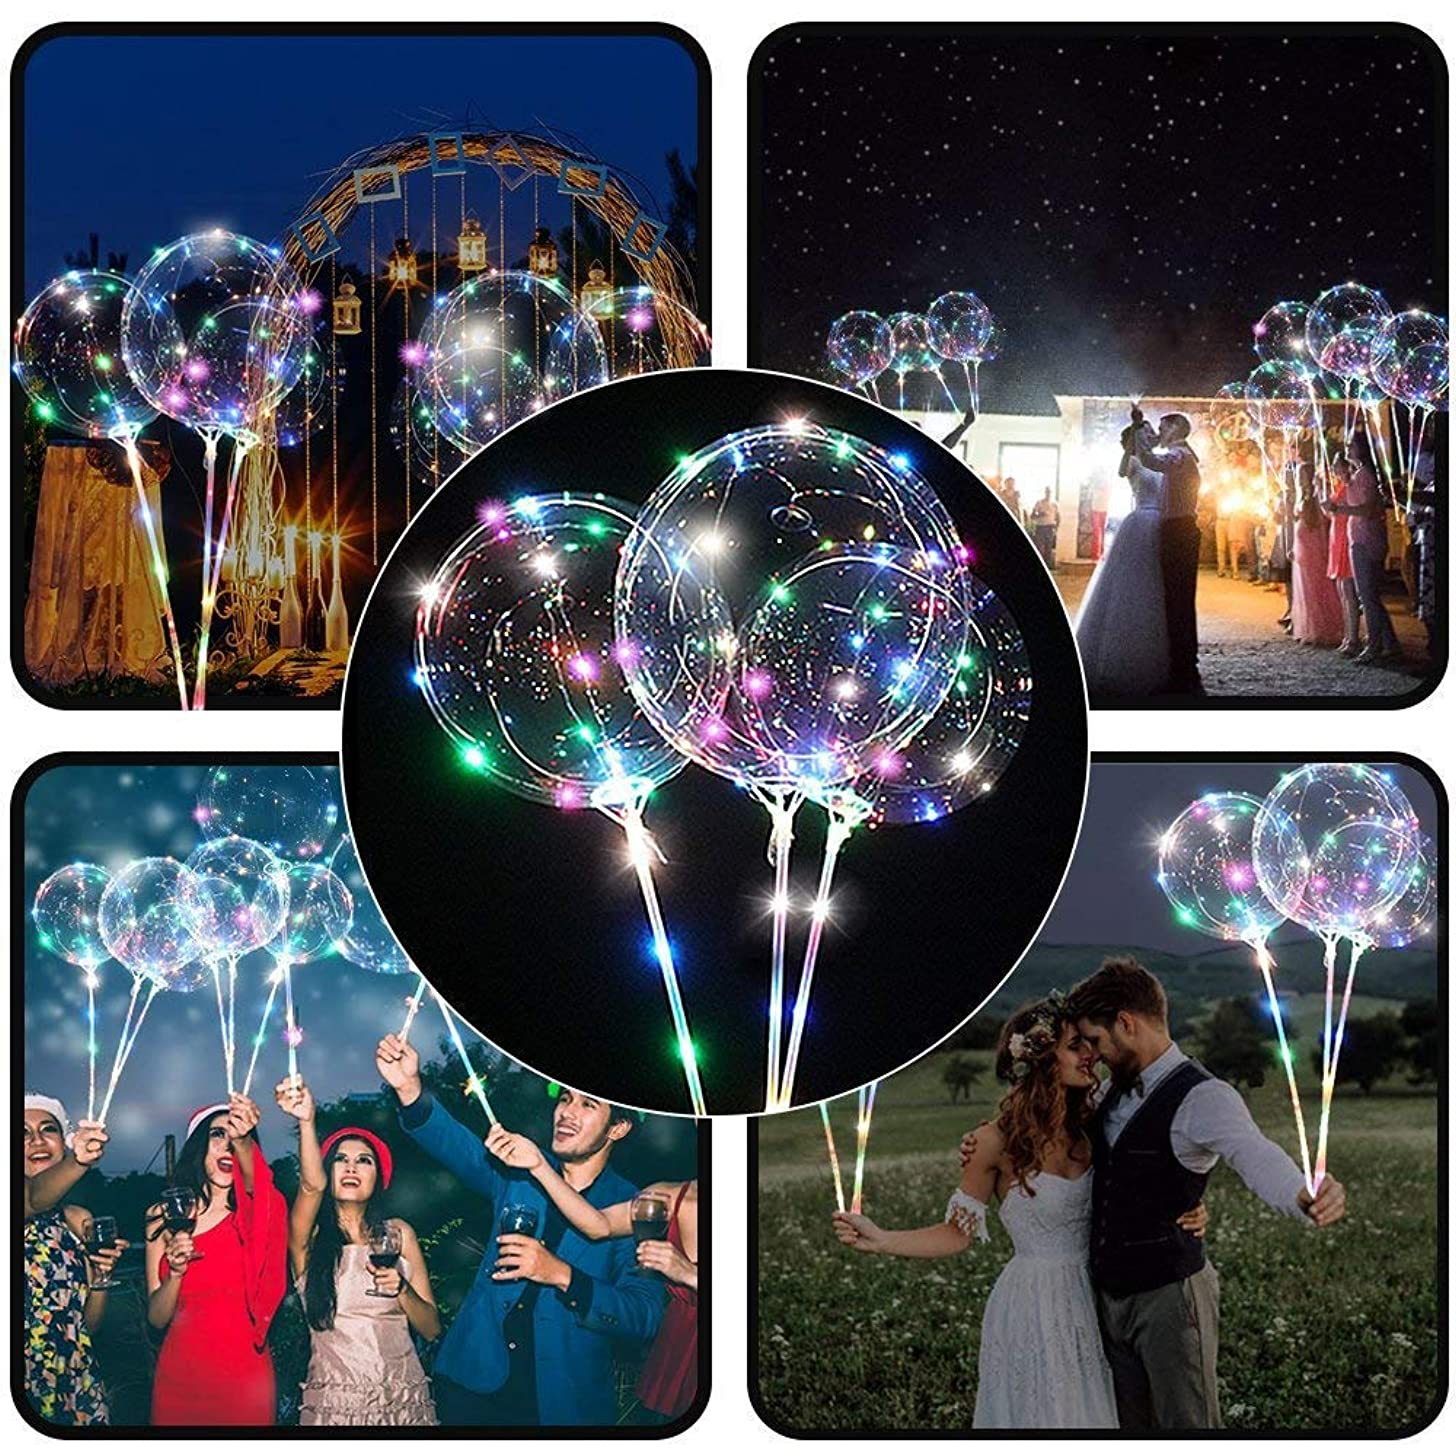 M·KVFA LED Balloon with Cup Light Up Balloons Decoration Party Latex Transparent Balloons Birthdays Wedding Carnival Parties Bar Bookstore (1x LED Balloon+1 x LED Rope+2 x Sticks, Multicolor)